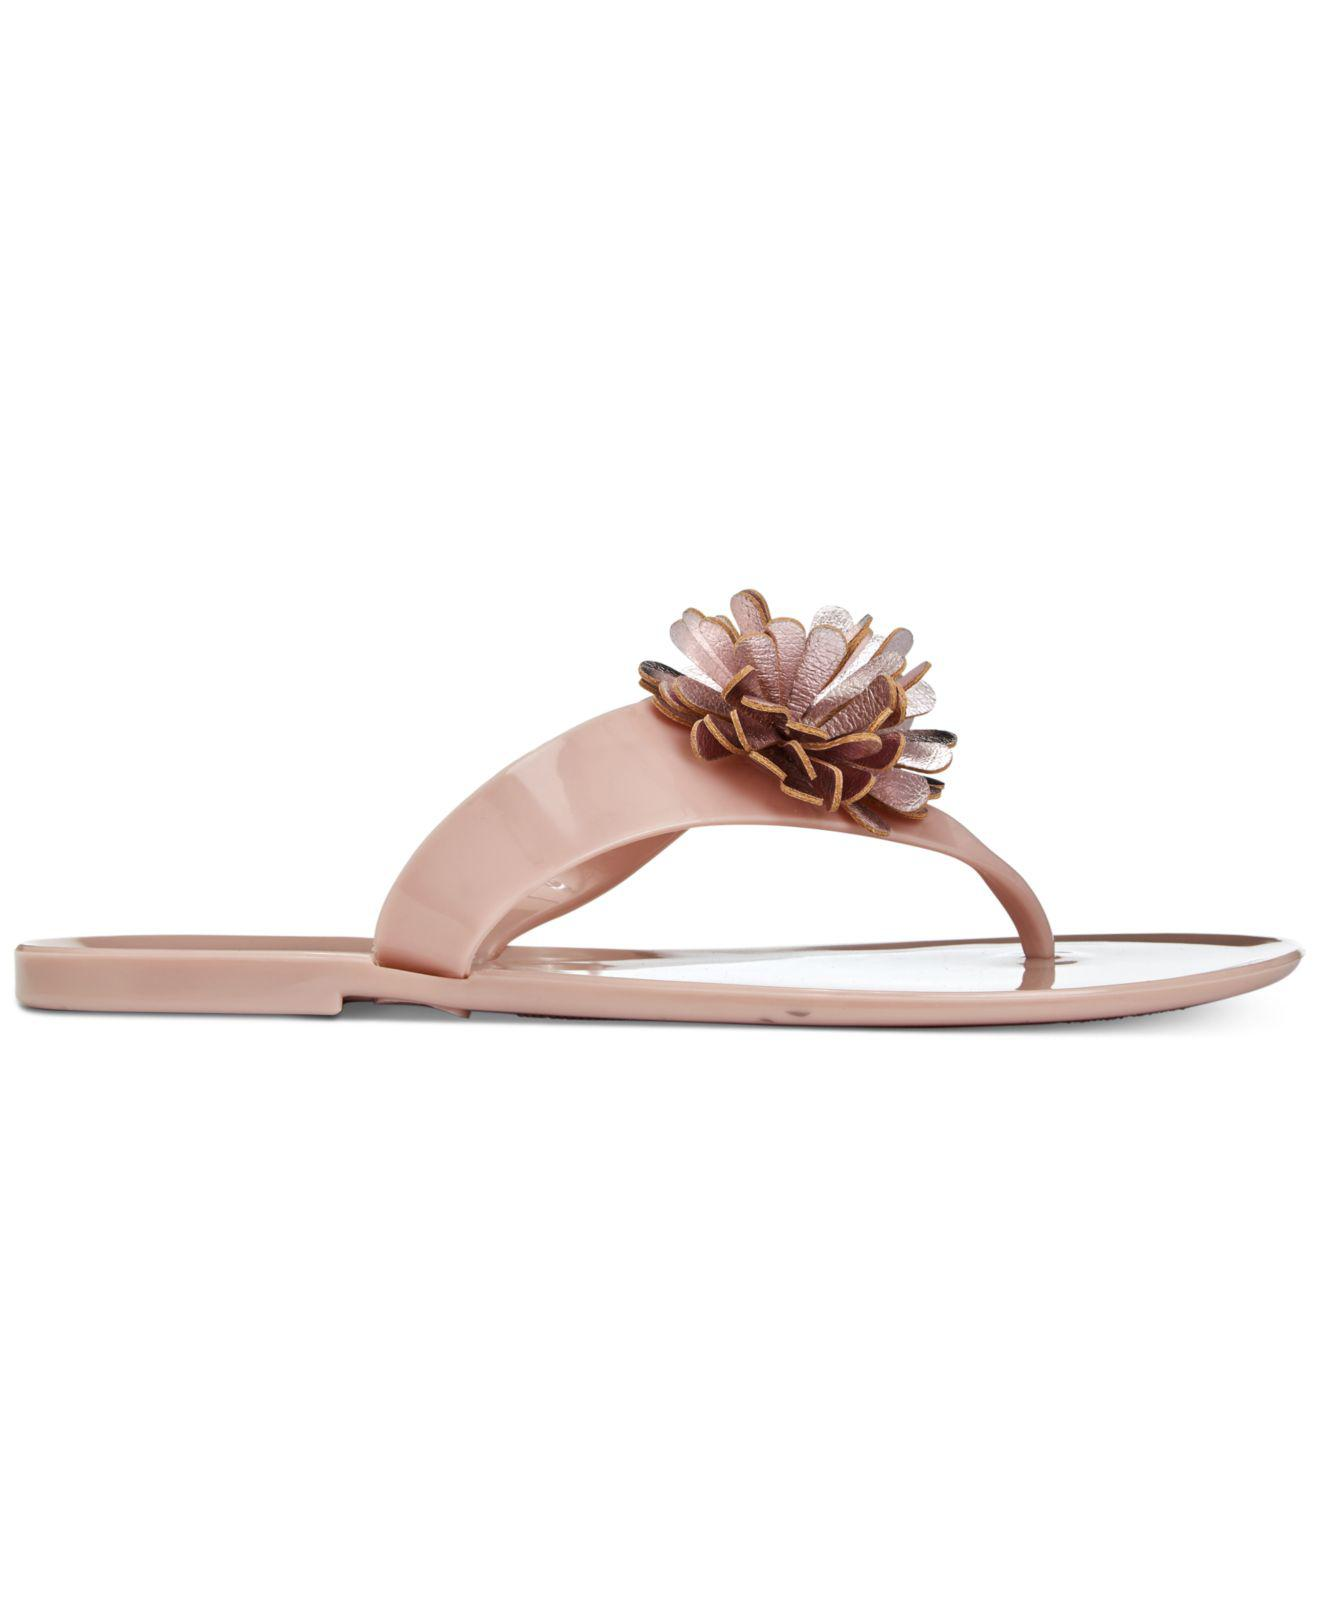 4c2b717216c8 Charter Club Daphnee Flat Thong Jelly Sandals, Created For Macy's - Lyst